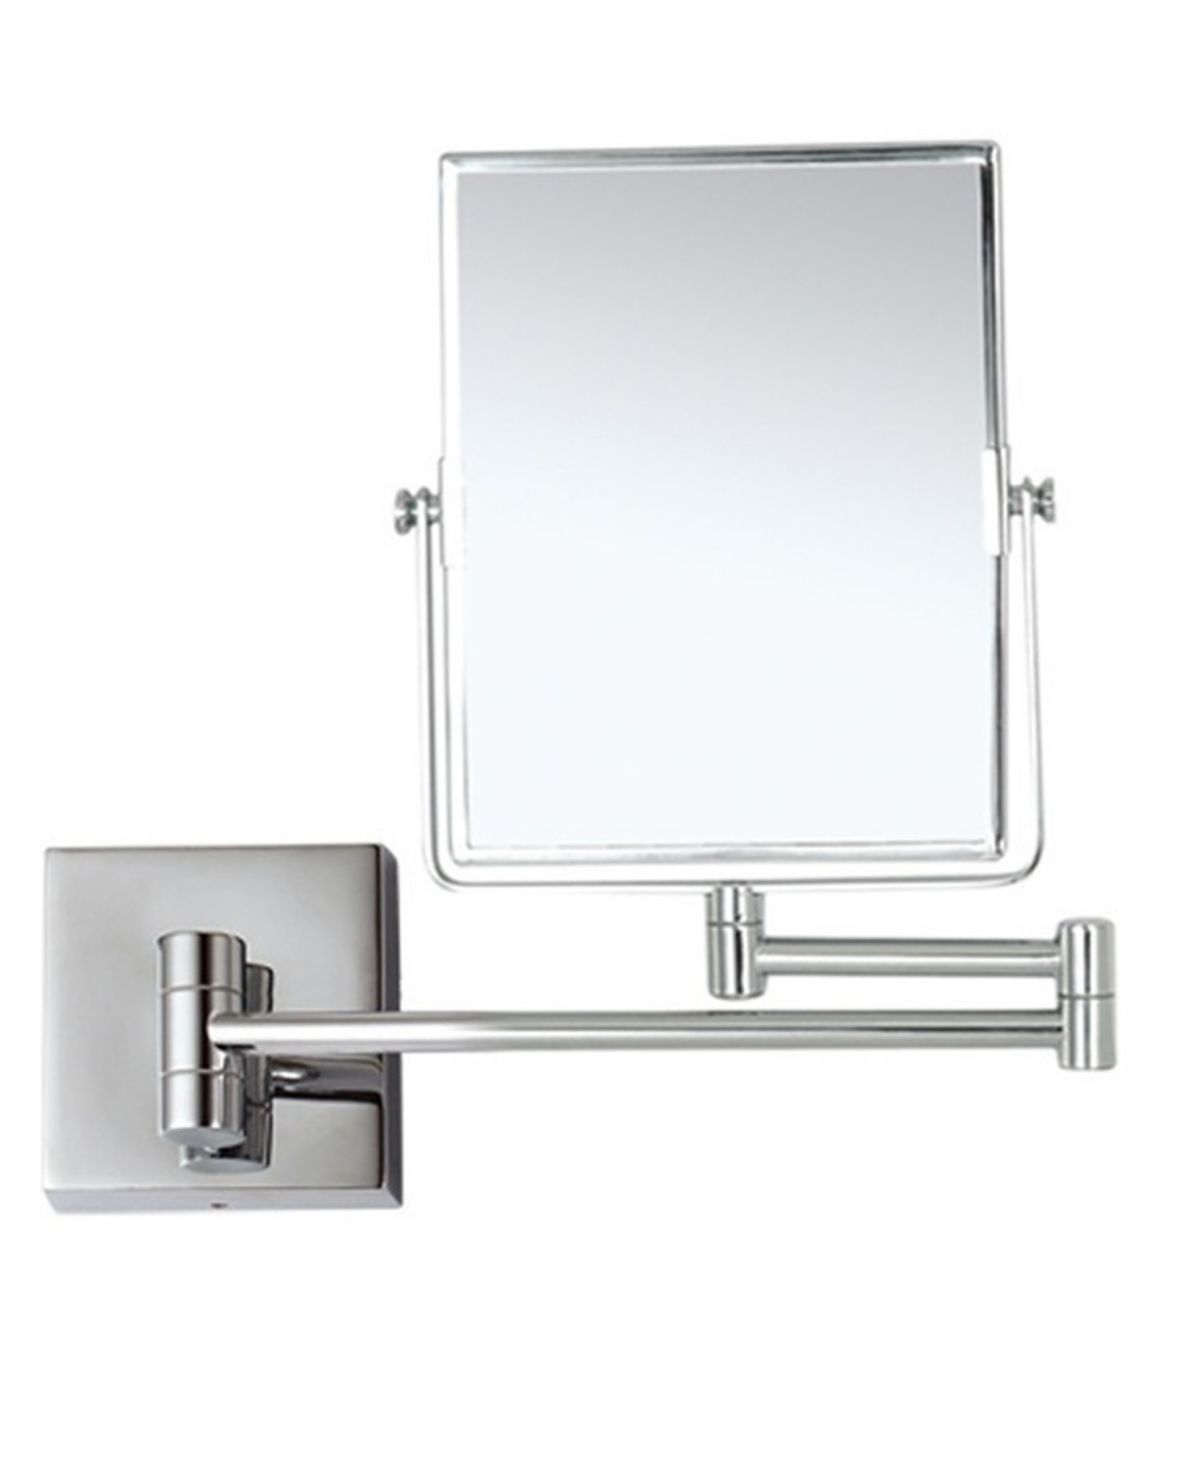 Nameeks Glimmer Double Face 5x Wall Mounted Makeup Mirror